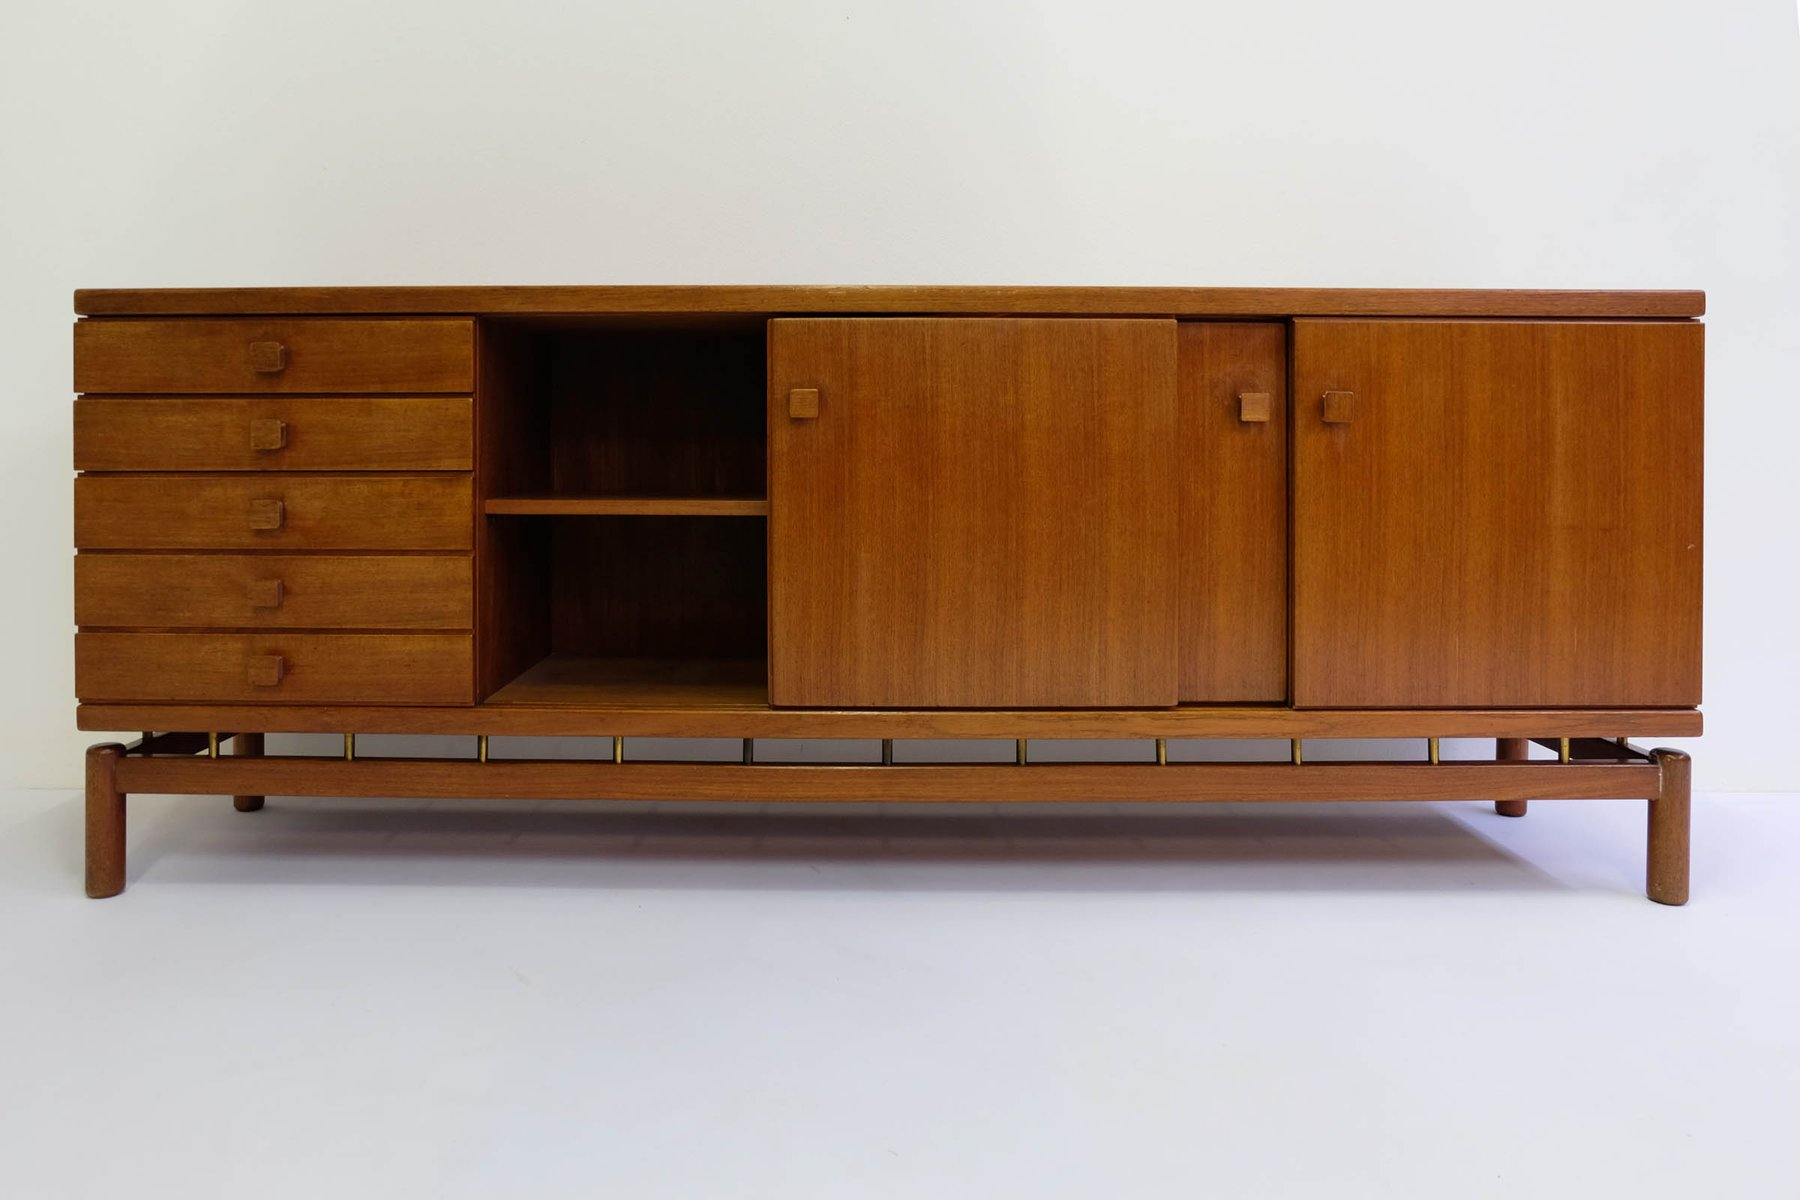 teak sideboard von ilmari tapiovaara f r la permanente cant 1957 bei pamono kaufen. Black Bedroom Furniture Sets. Home Design Ideas